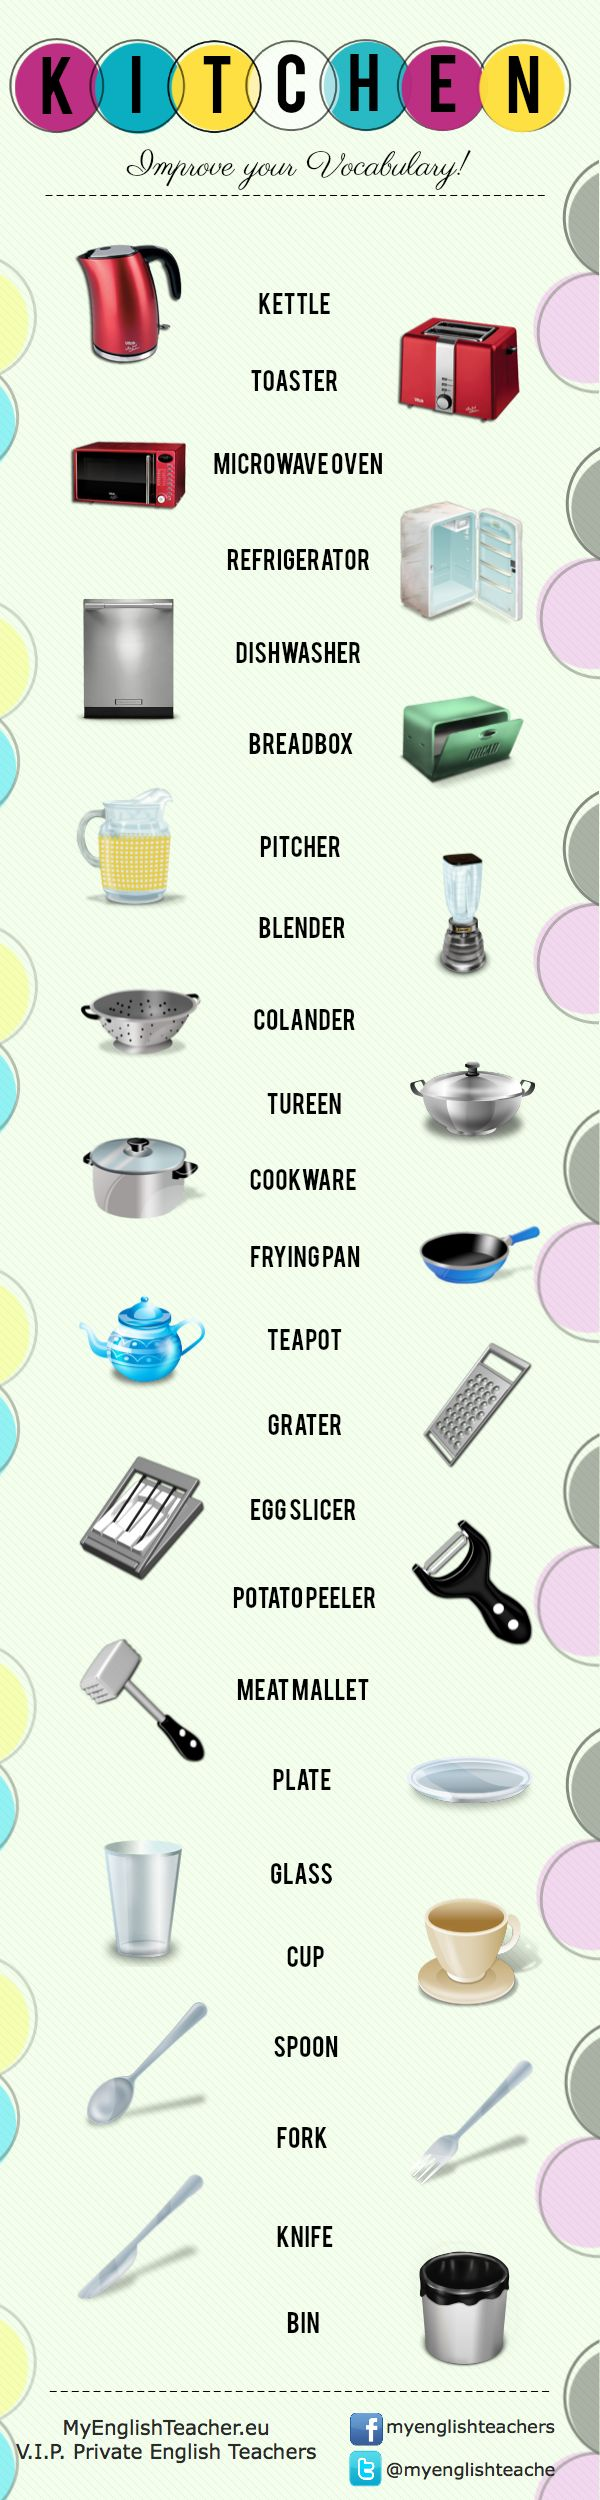 EwR.Poster #English Vocabulary - 24 Tools in the Kitchen